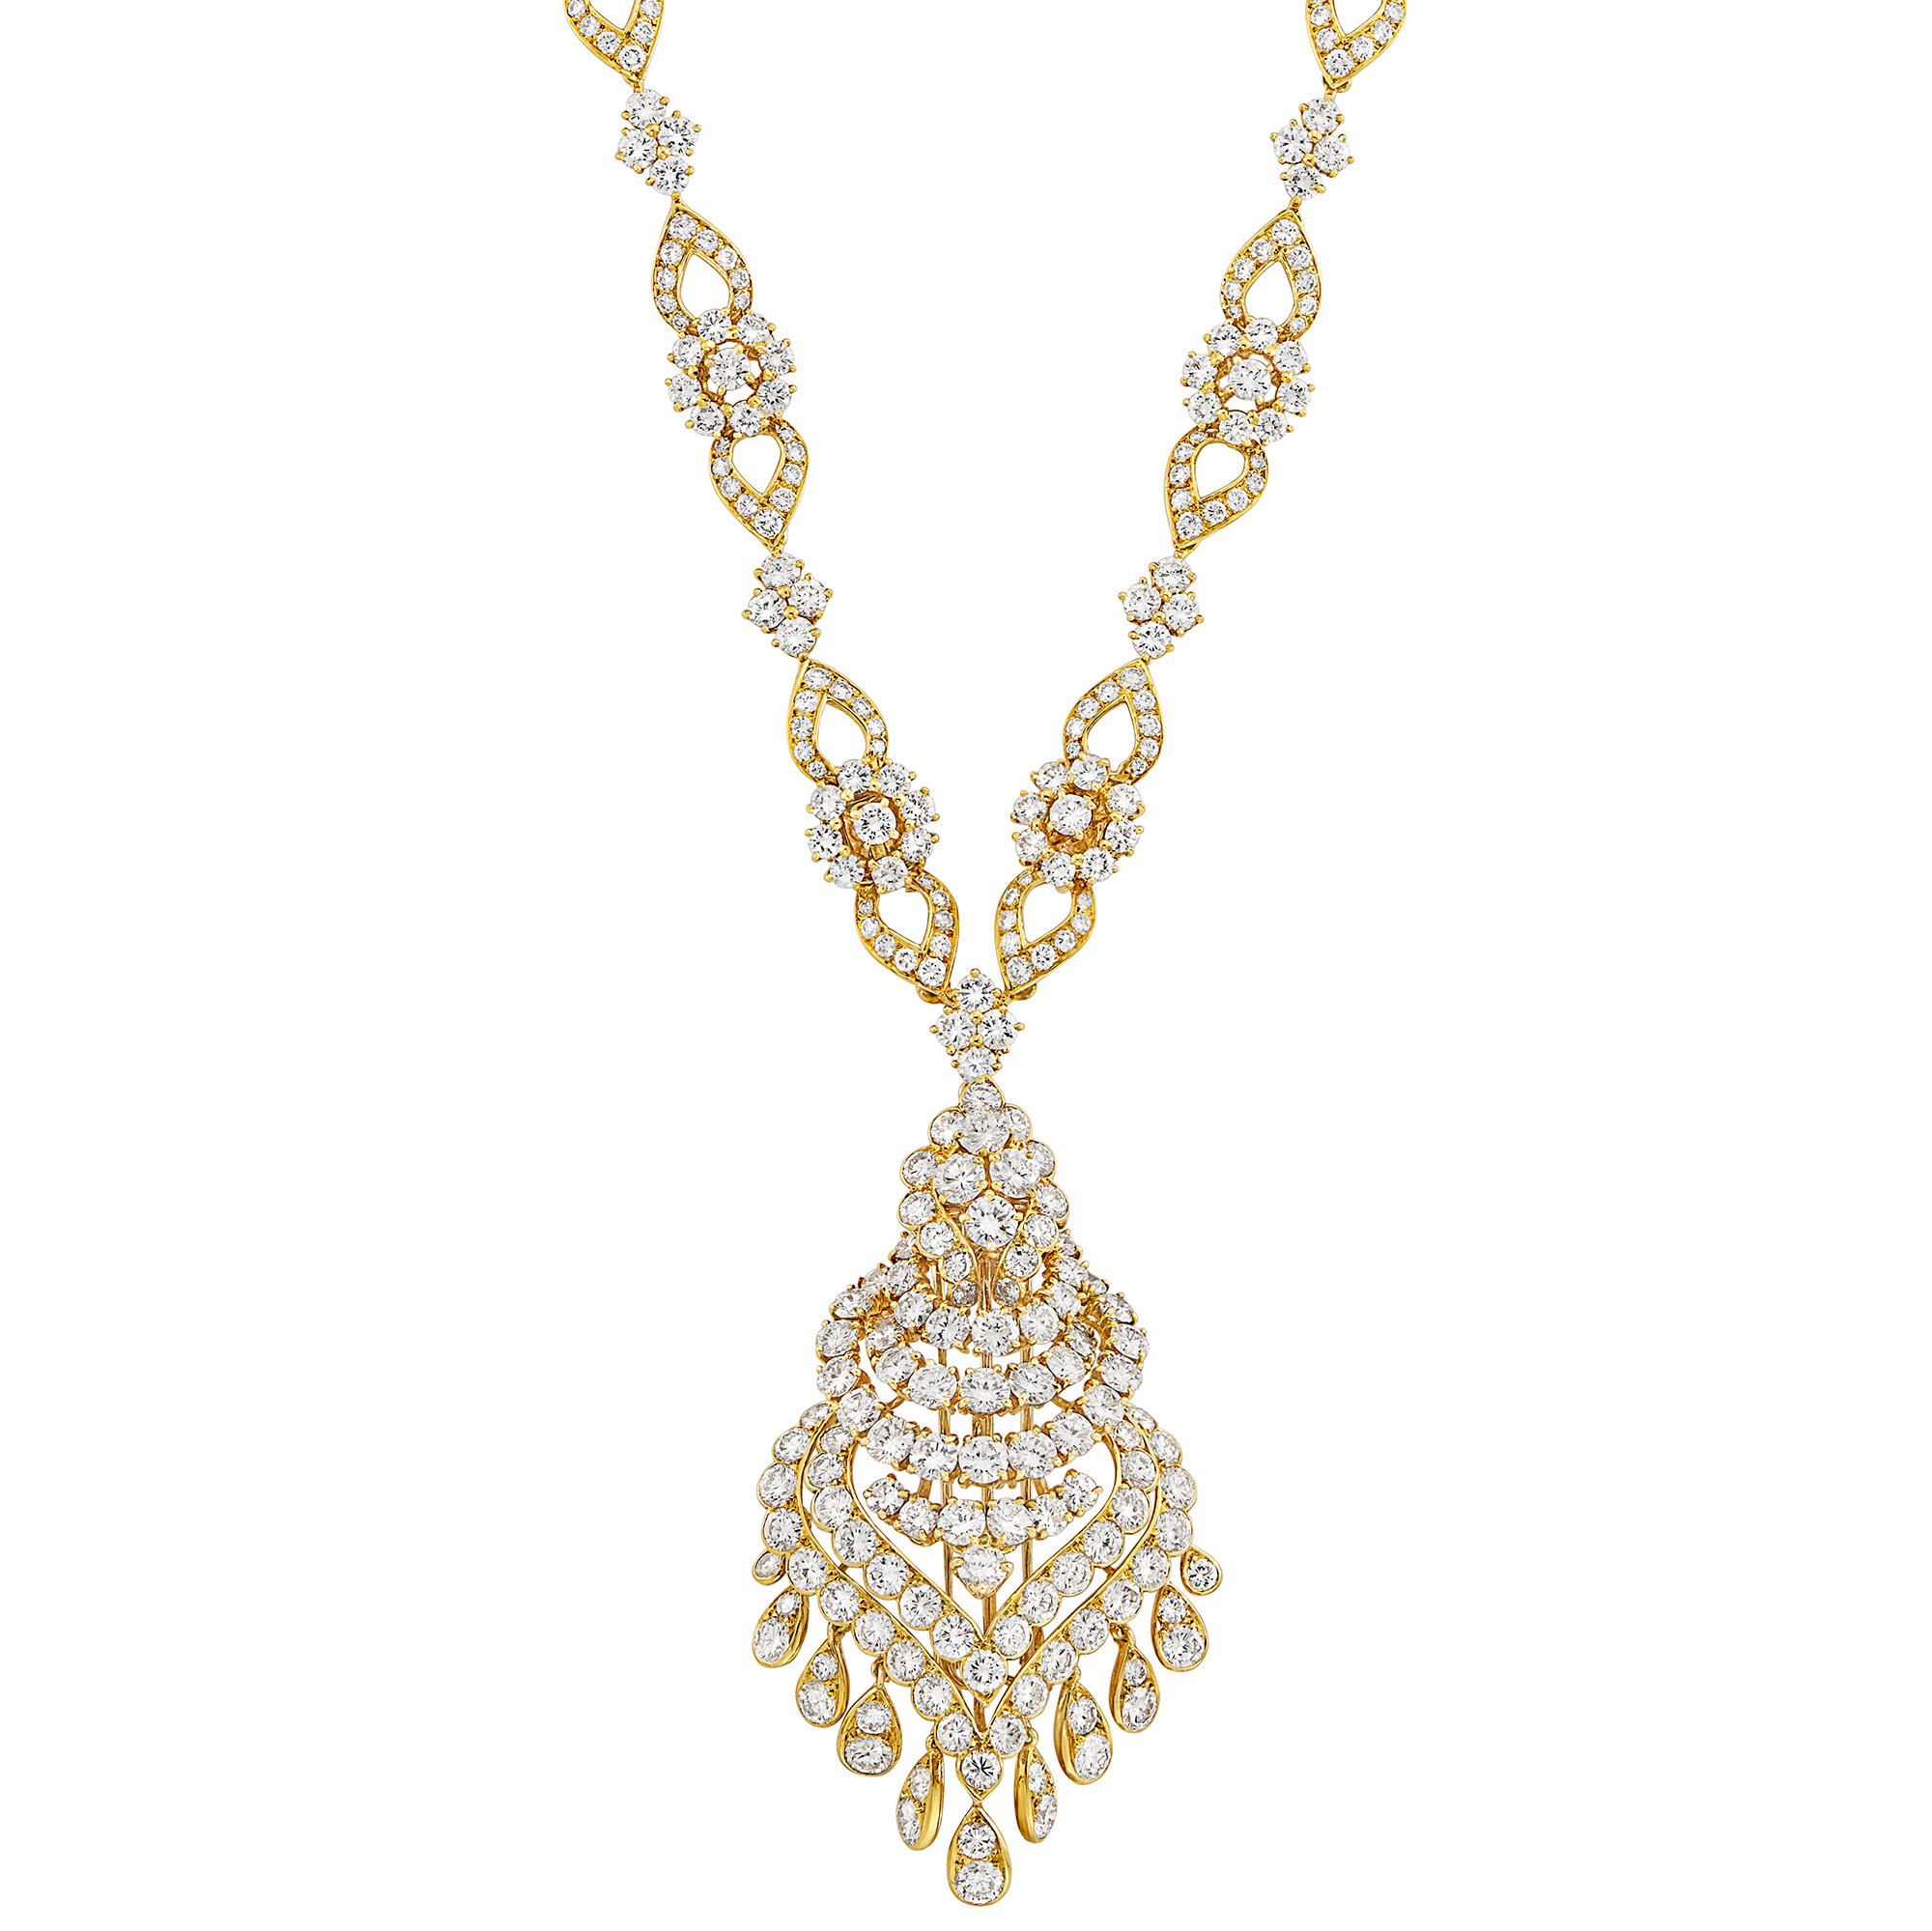 Lot image - Long Gold and Diamond Pendant-Brooch Necklace/Bracelets Combination, Van Cleef & Arpels, France